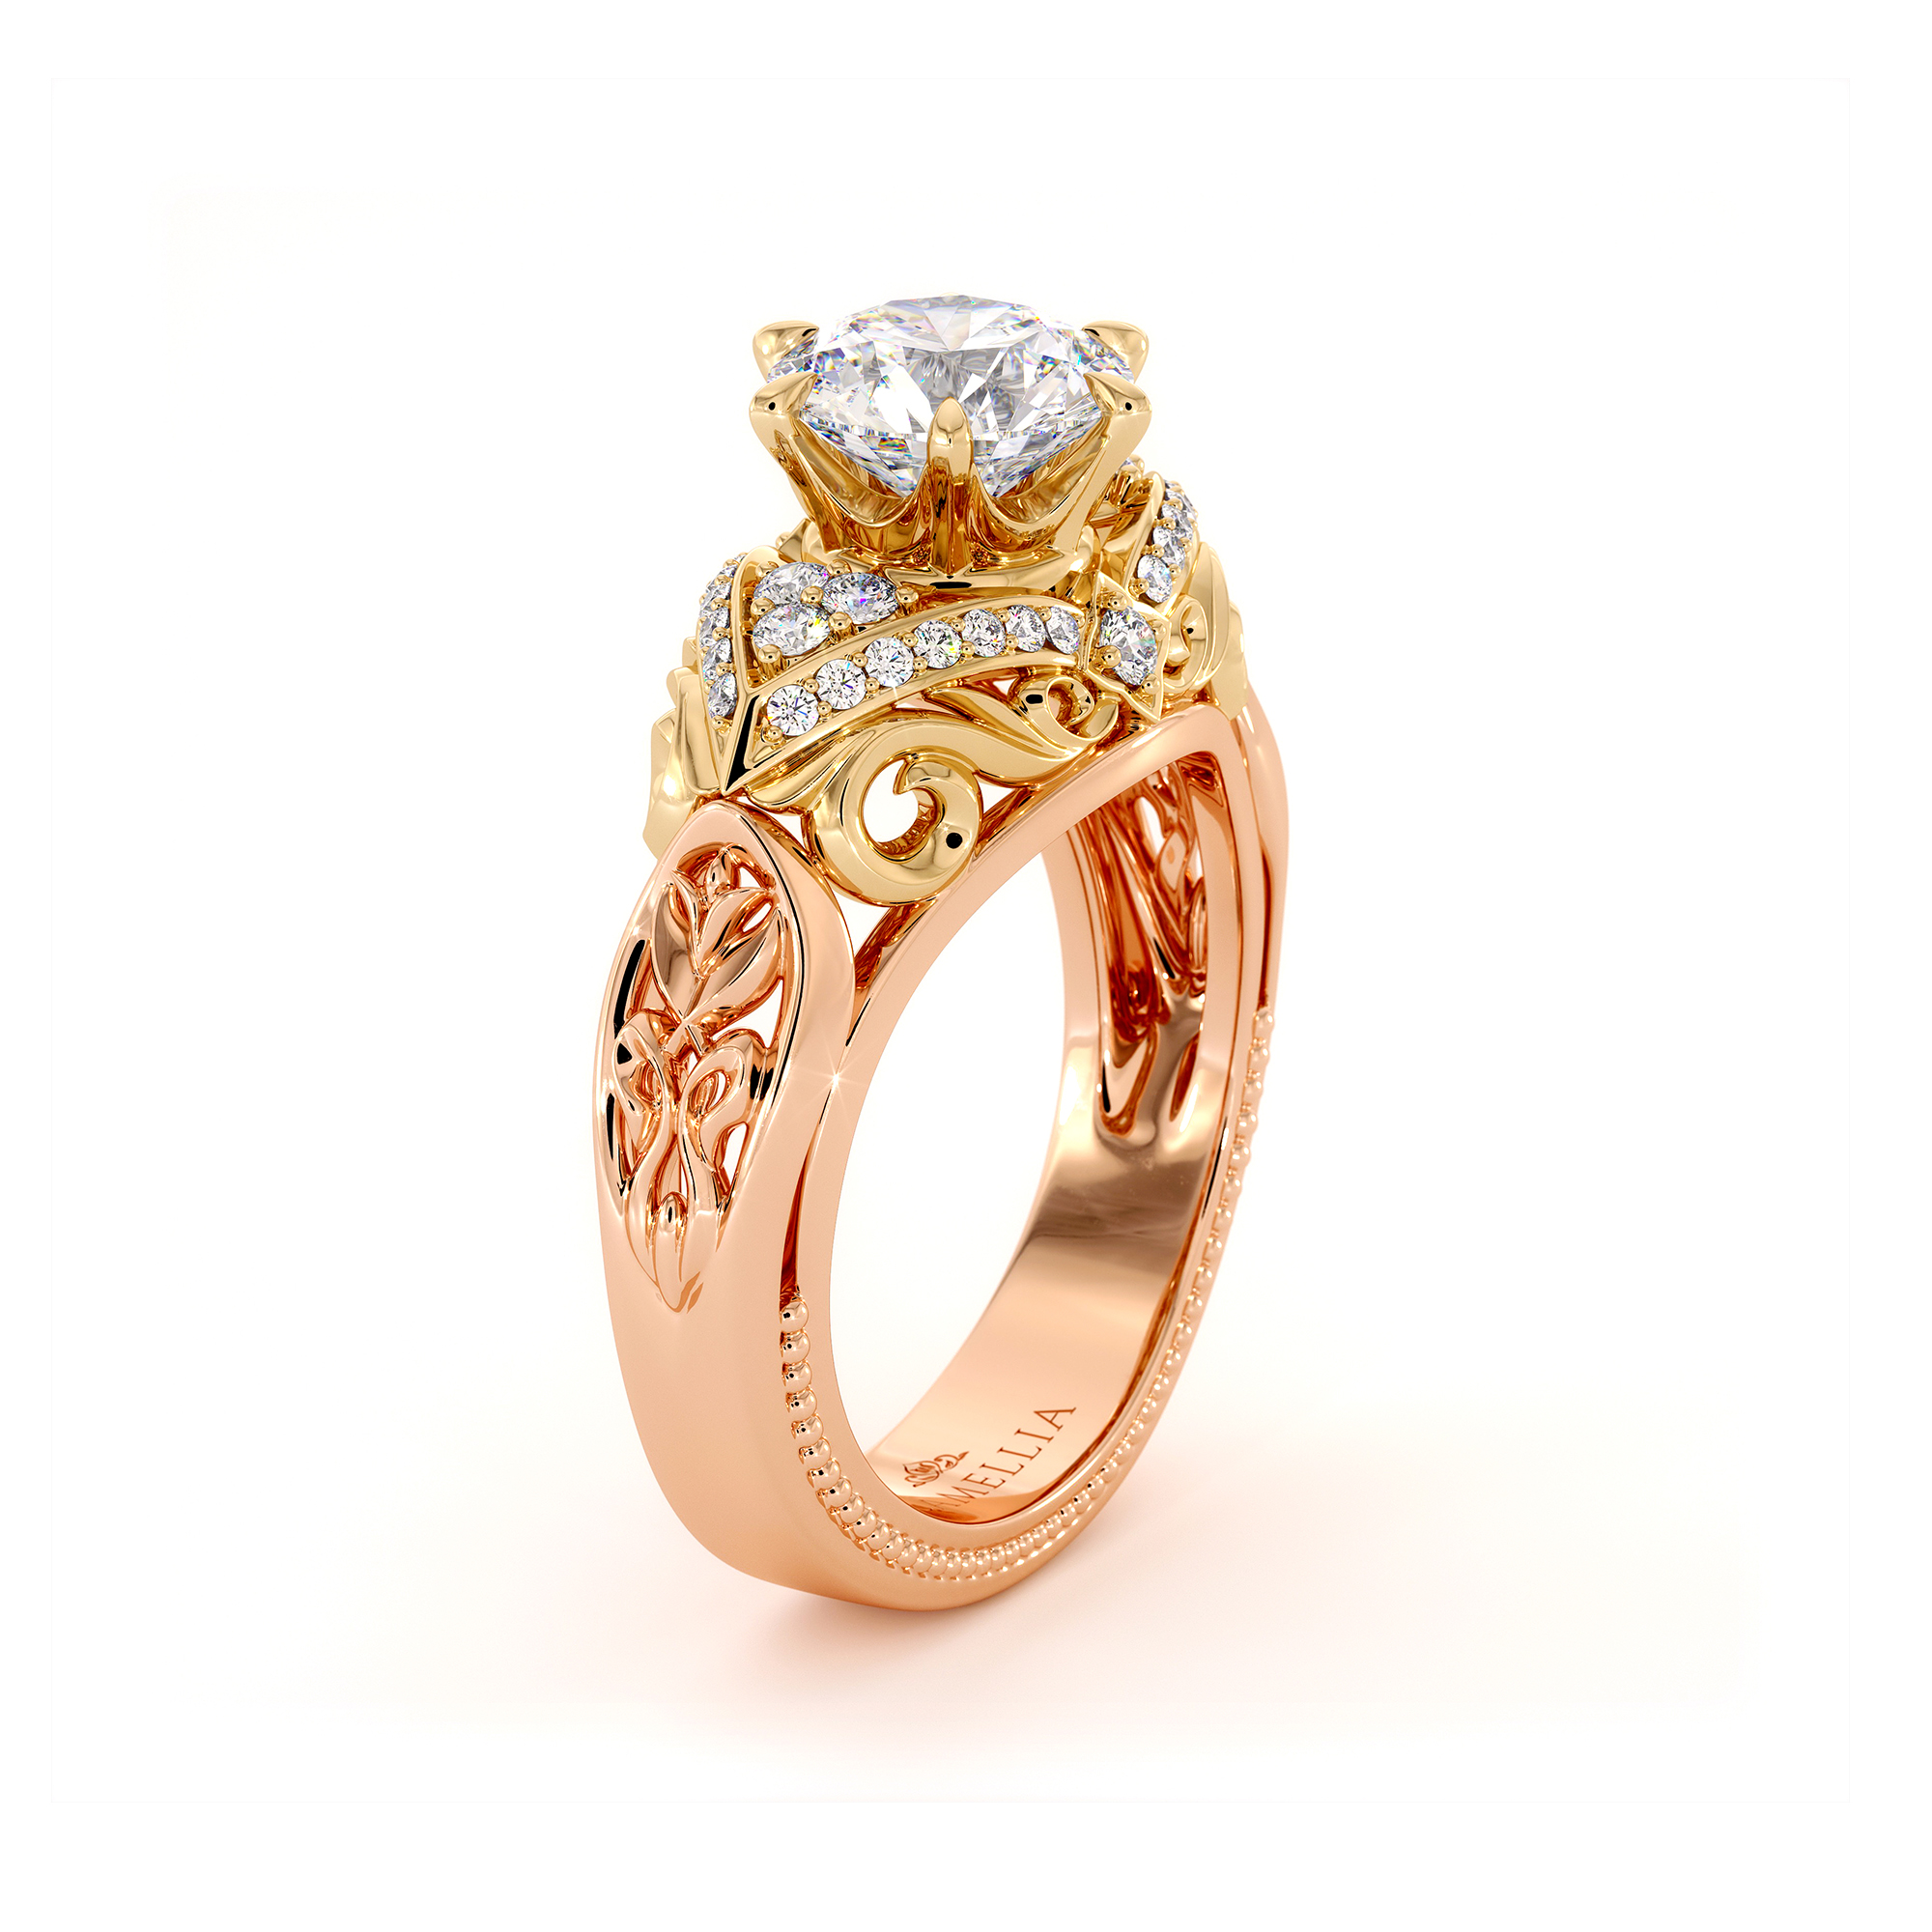 Spectacular 1.55 Carat Moissanite Engagement Ring Two Tone Gold Engagement Ring